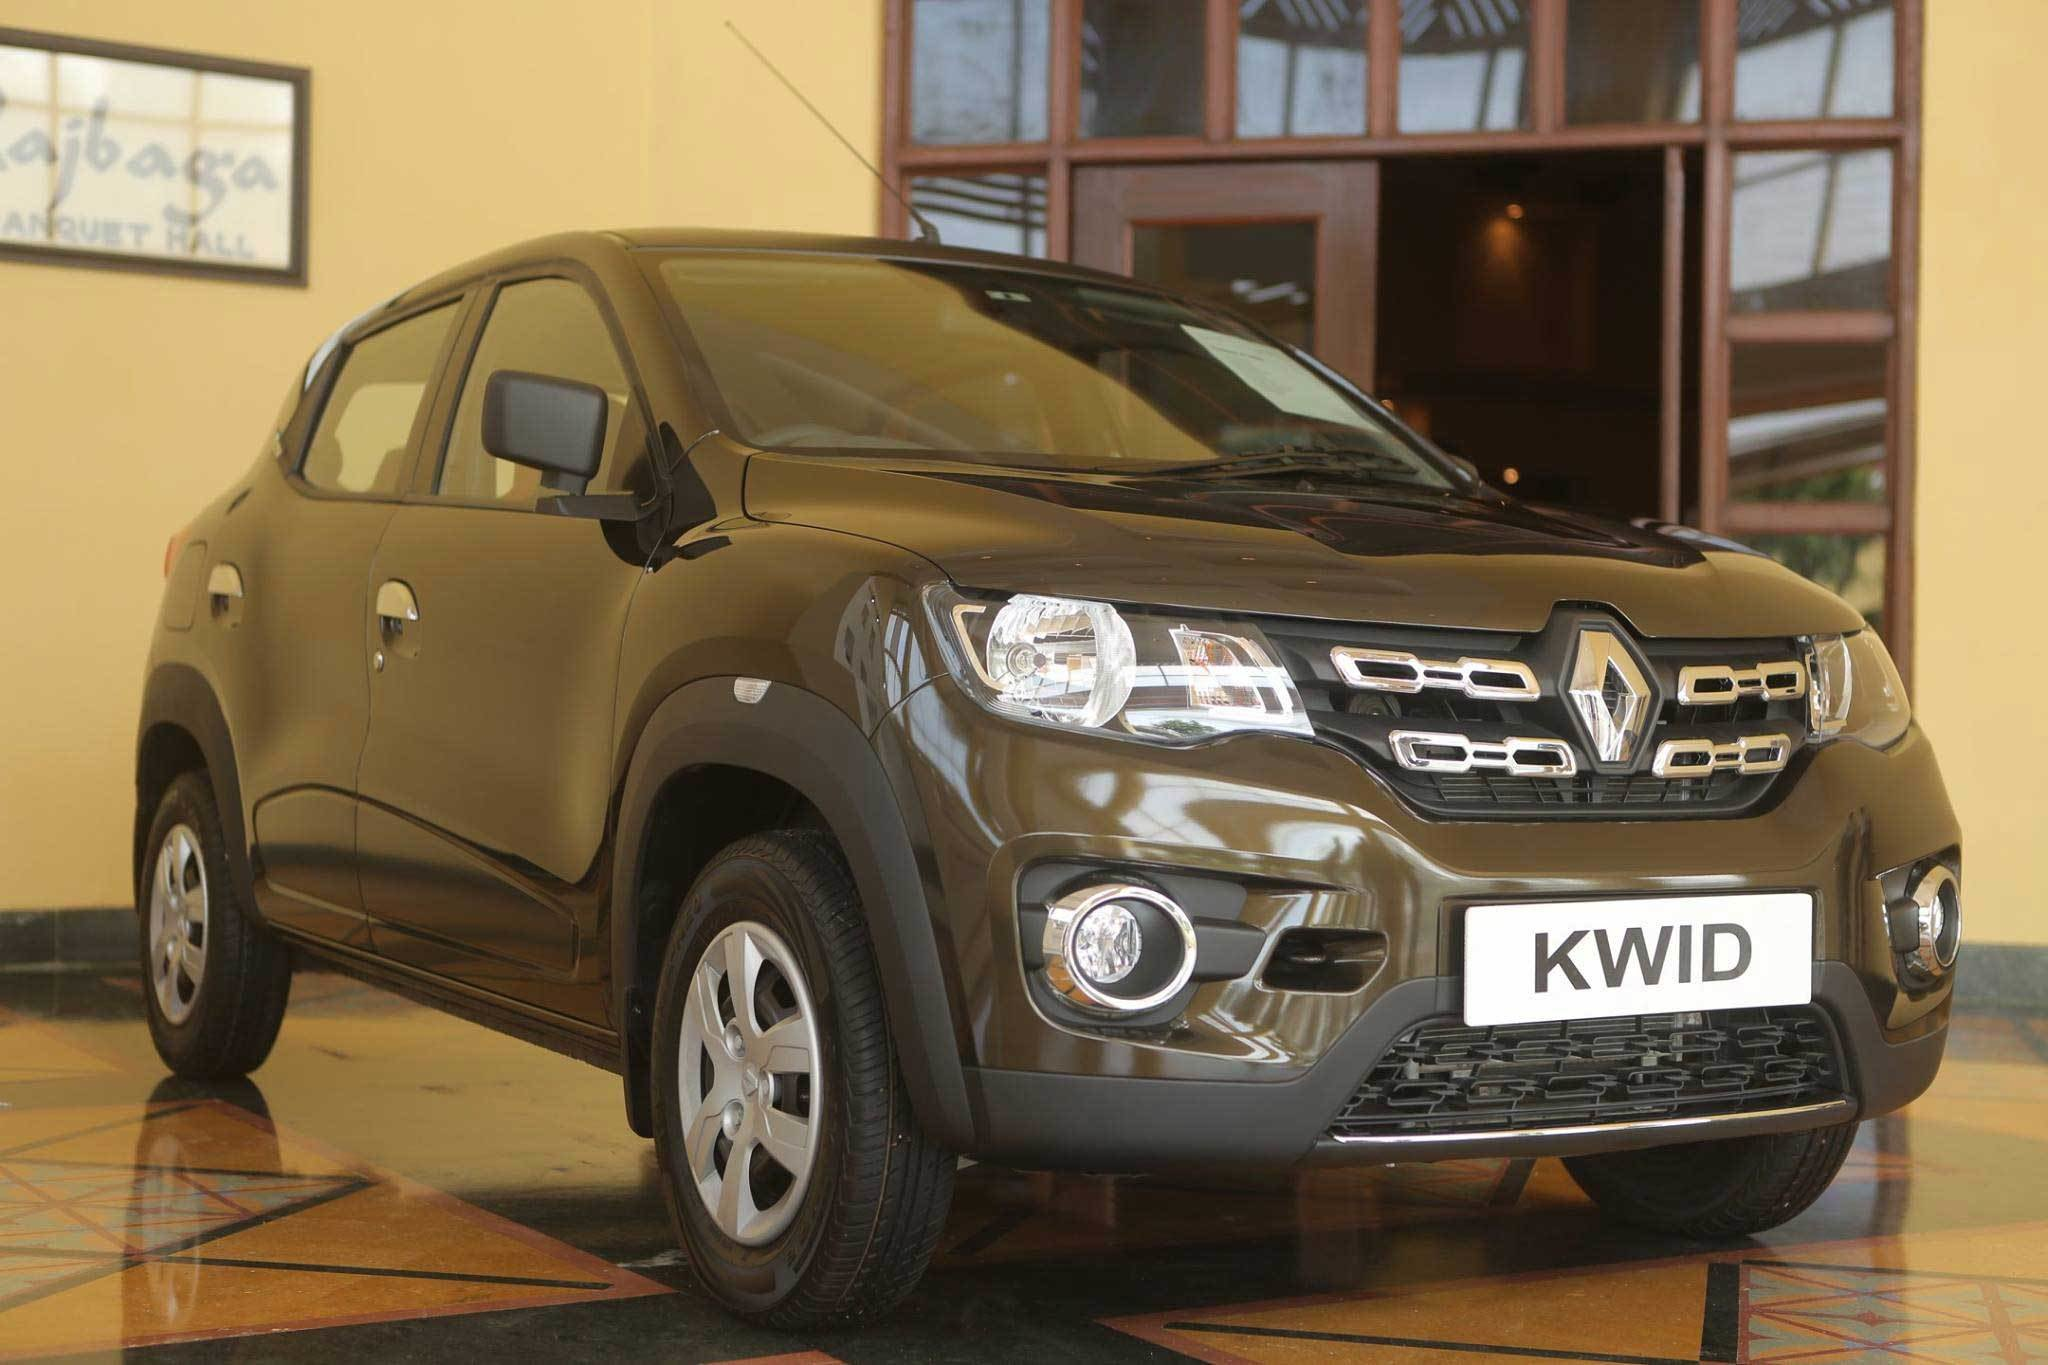 New Renault Kwid Standard Exterior Image Gallery Pictures Photos On This Month